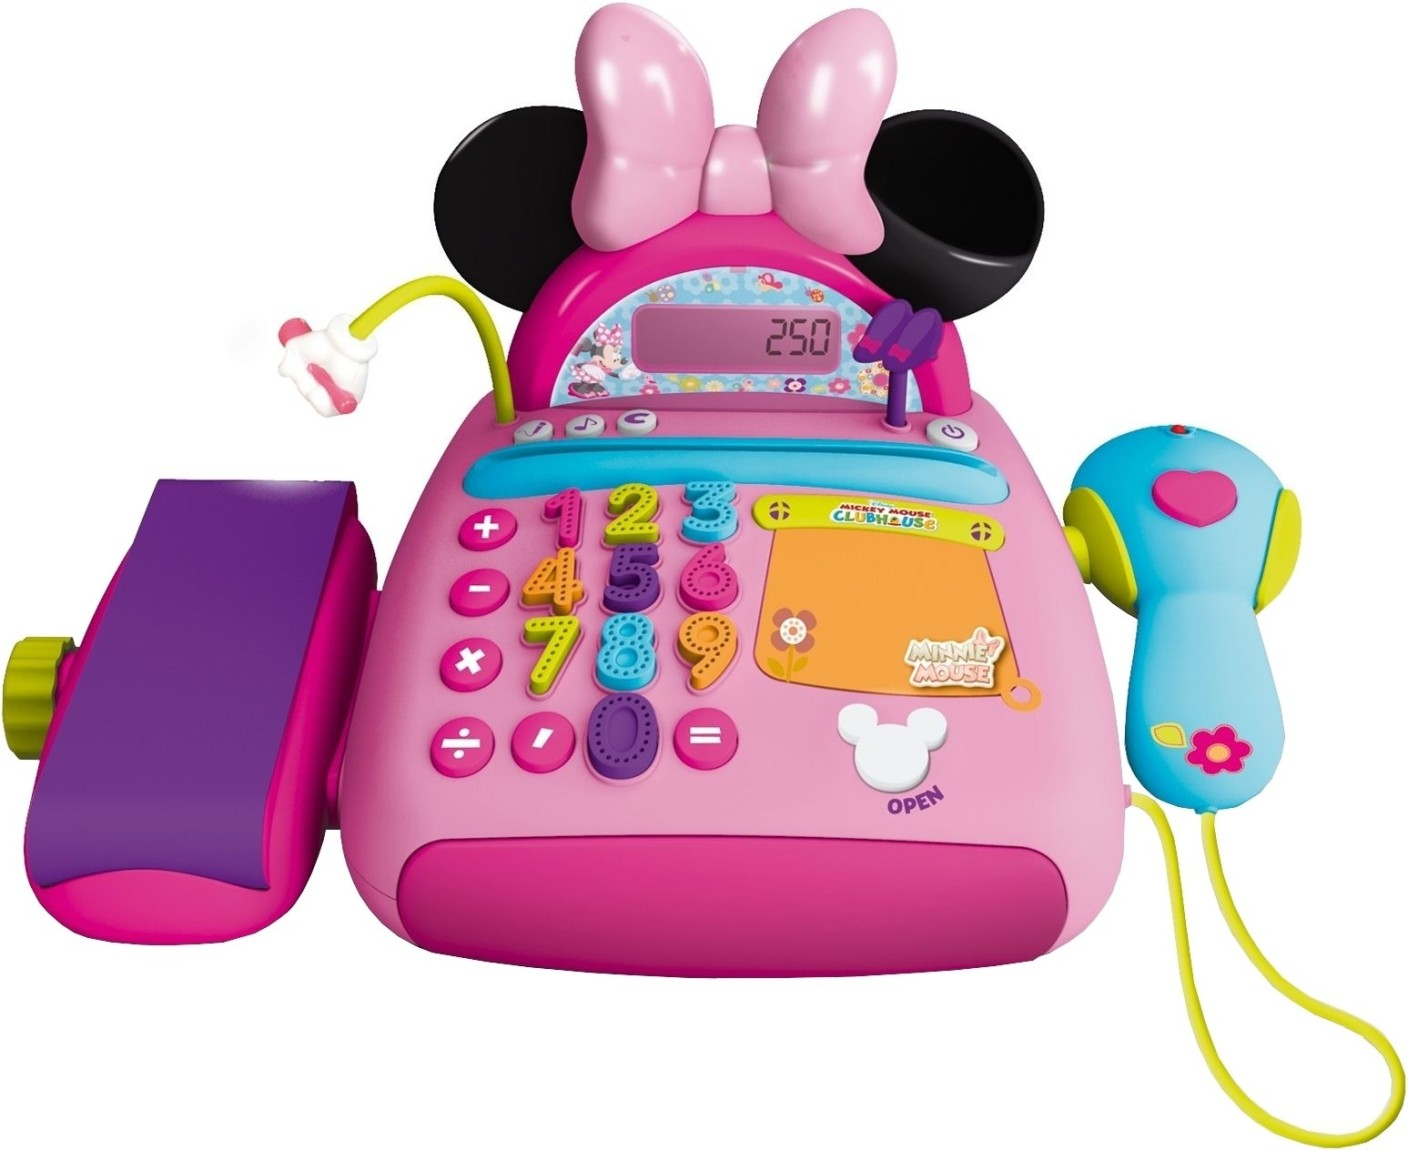 Electronic Learning Toys : Imc electronic cash register price in india buy